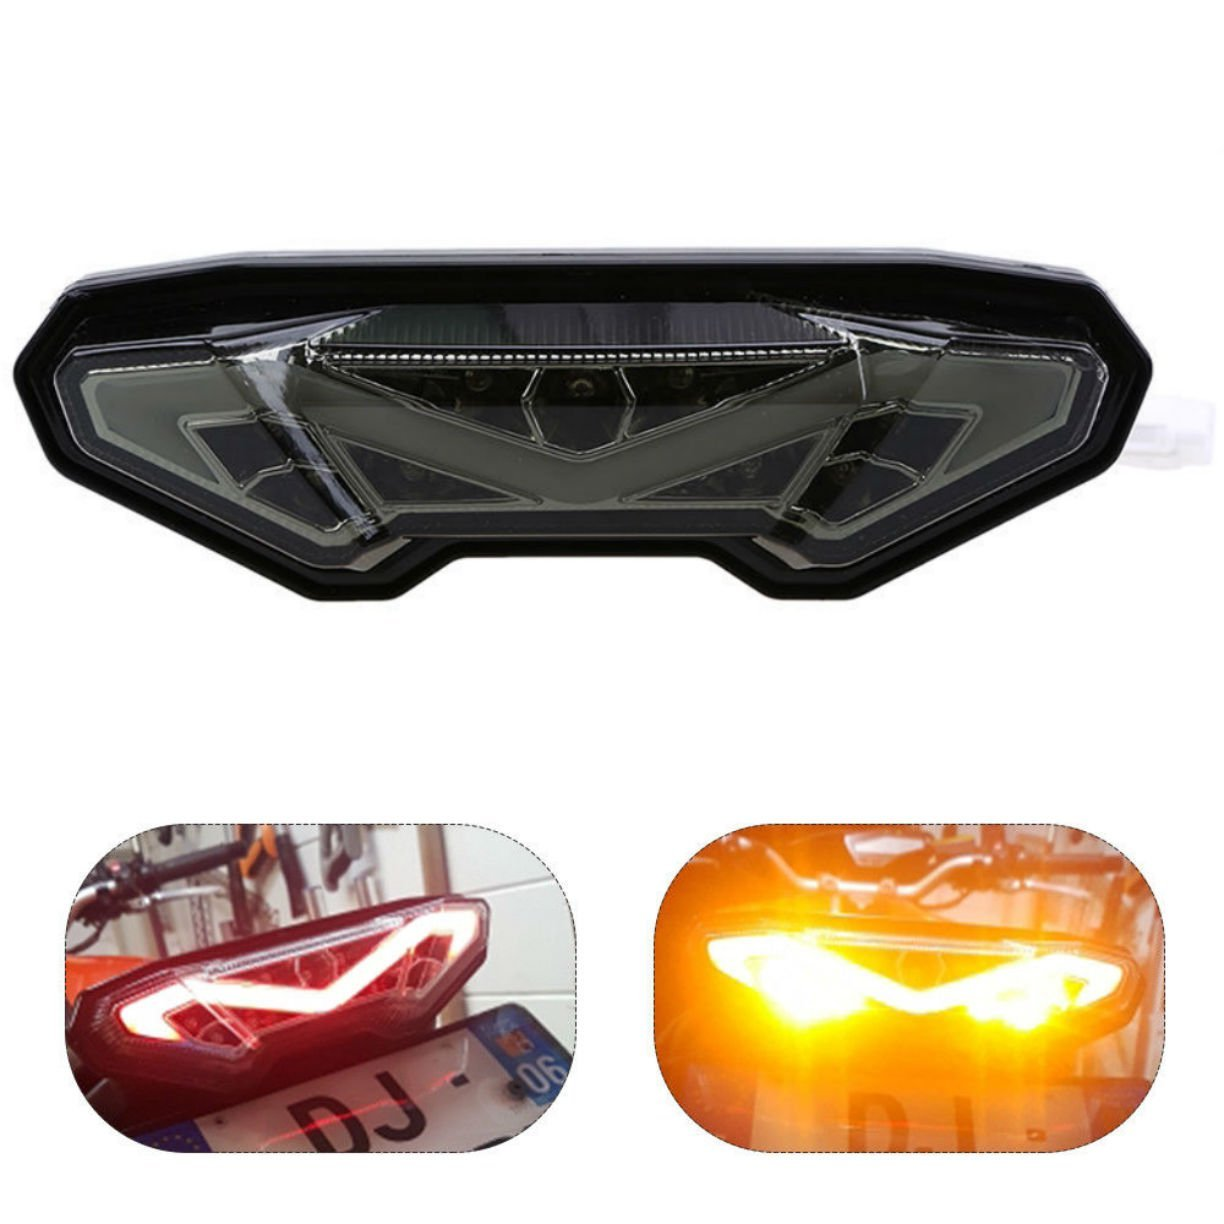 Amazon.com: MZS LED Tail Light Turn Signal Blinker Integrated for Yamaha  MT-09 FZ-09 2014-2016/ MT09 Tracer FJ-09 2015-2017/ MT-10 FZ-10 2016-2017  (Smoke): ...